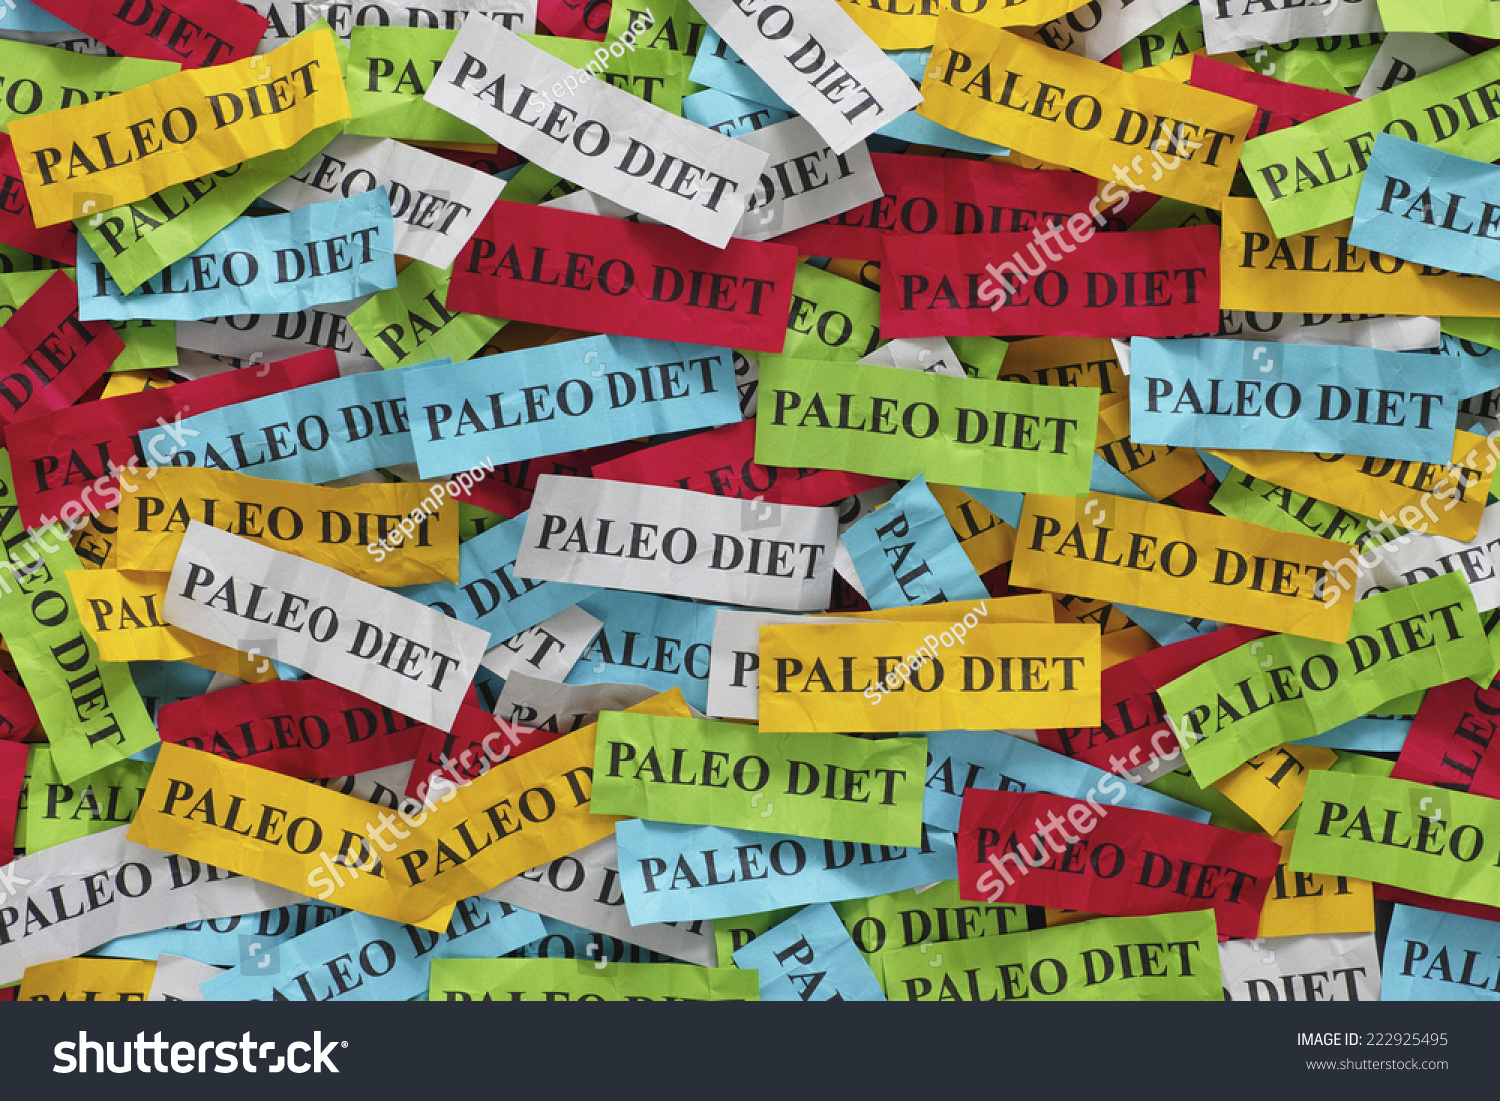 paleo diet research paper Top 5 published scientific papers for paleo answered on august 19, 2014  science research paleo 0 i have some scientist friends complaining about how anecdotal all this paleo stuff is i'm looking for the top 5 most persuasive, well researched papers out there  i'm not going to argue for a paleo diet because i'm not married to a.